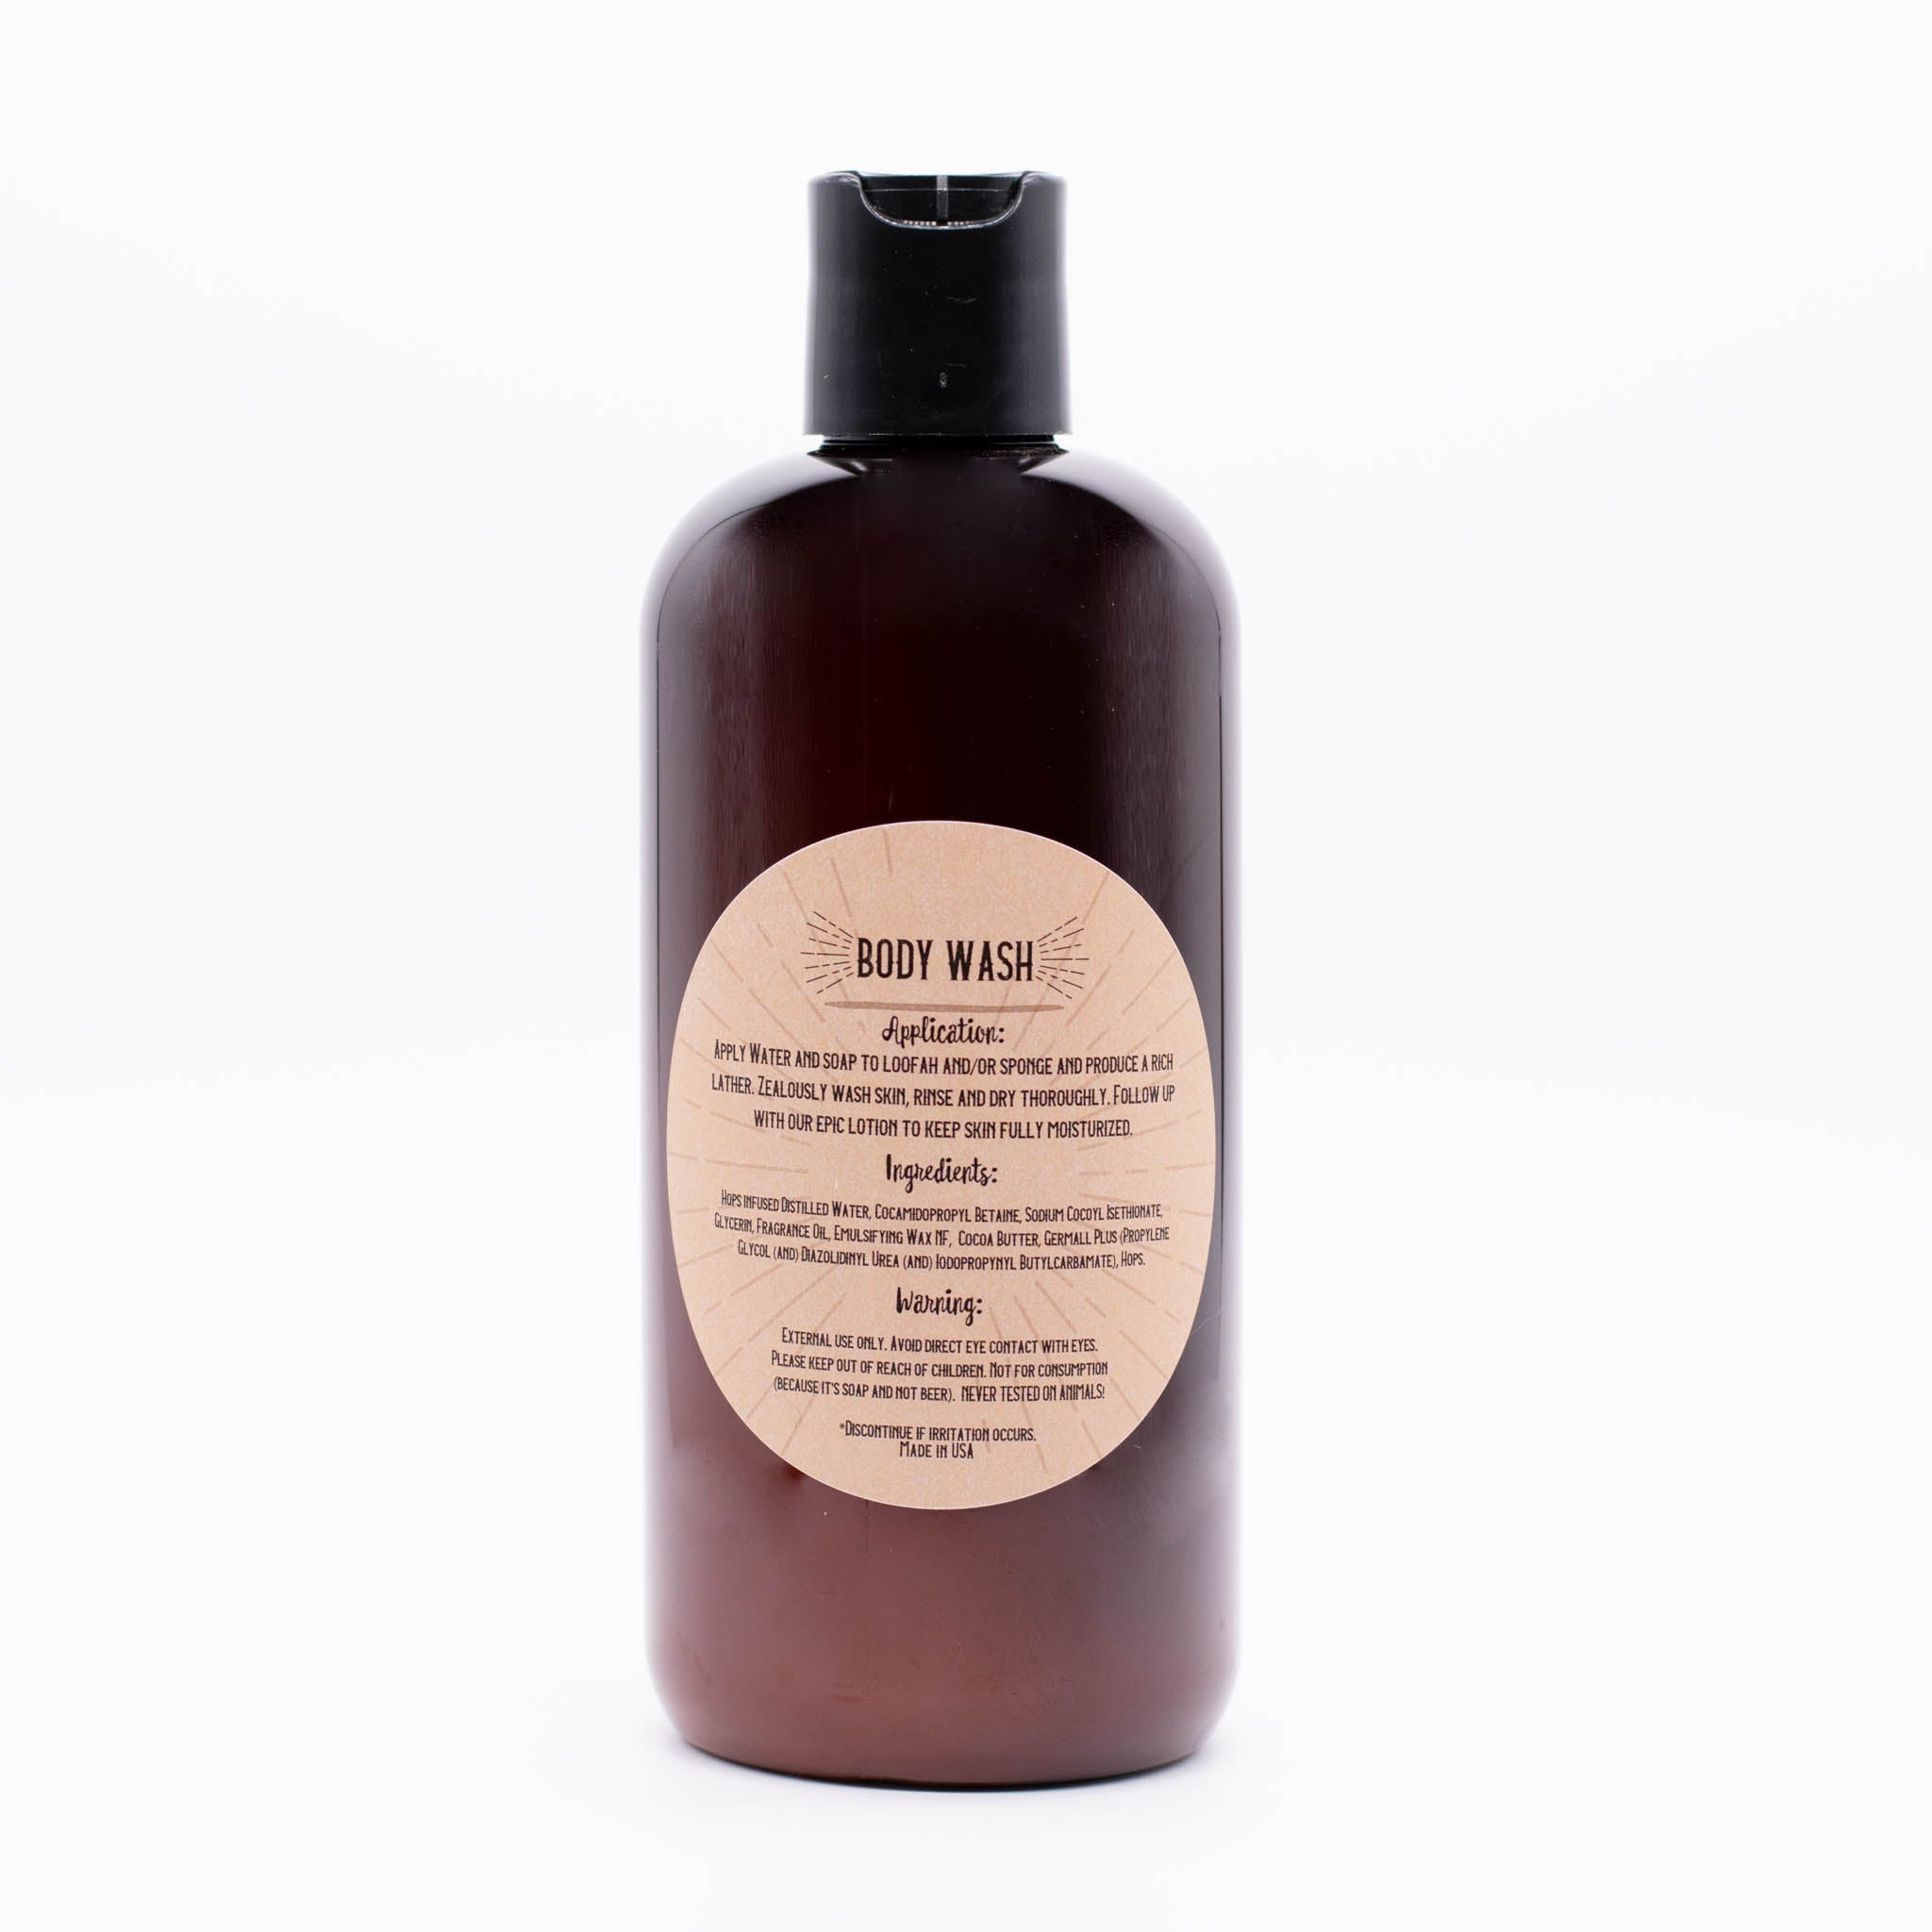 TRADE Ale Body Wash